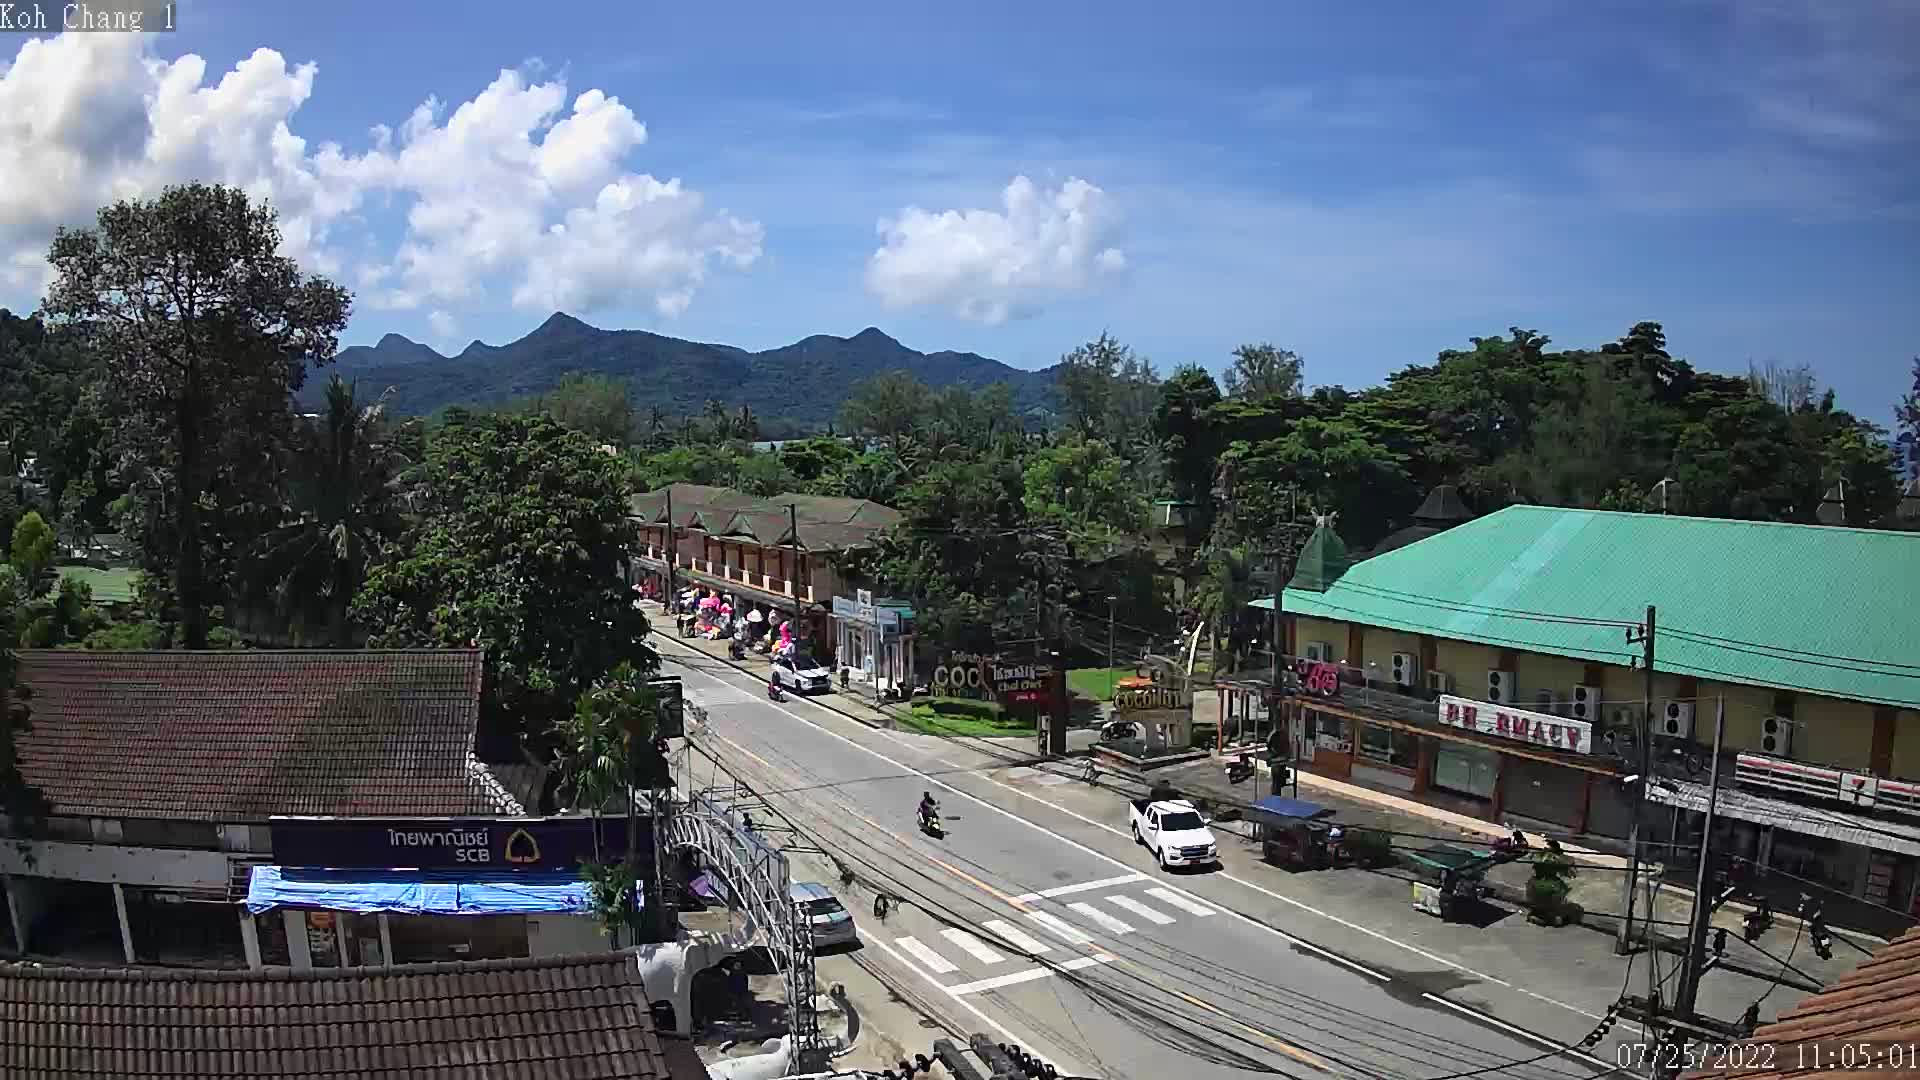 Koh Chang Webcam 1 is offline at this time